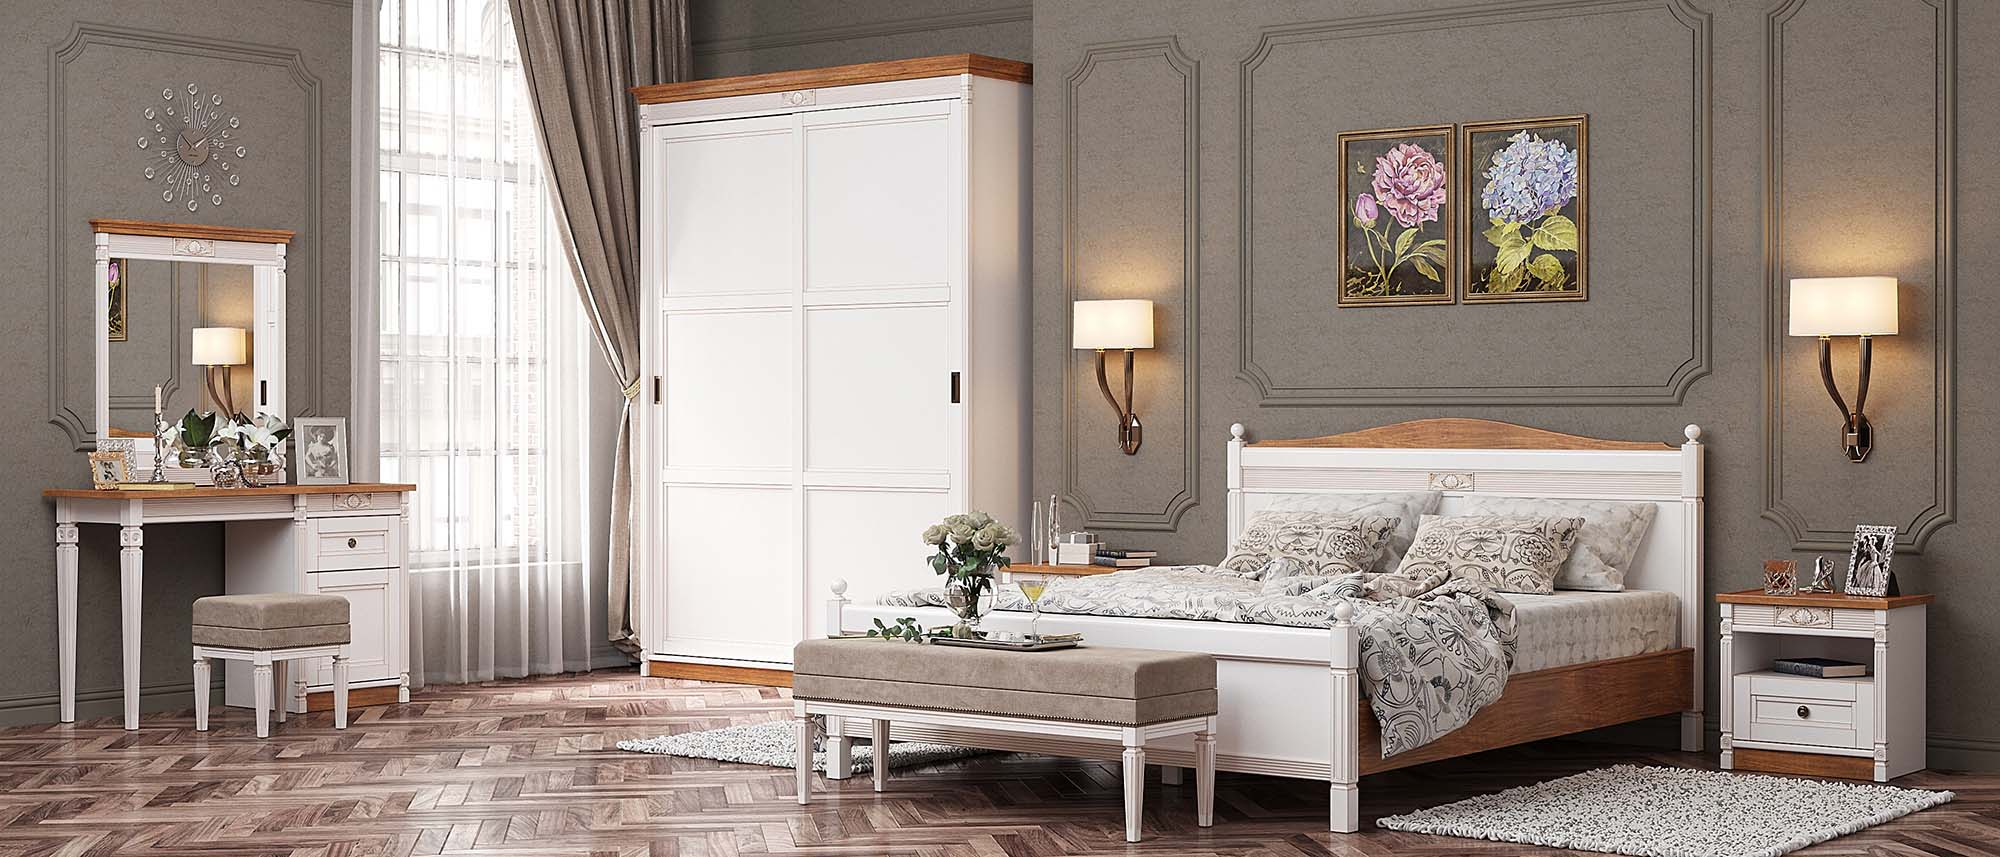 Bedroom_01_Marsel